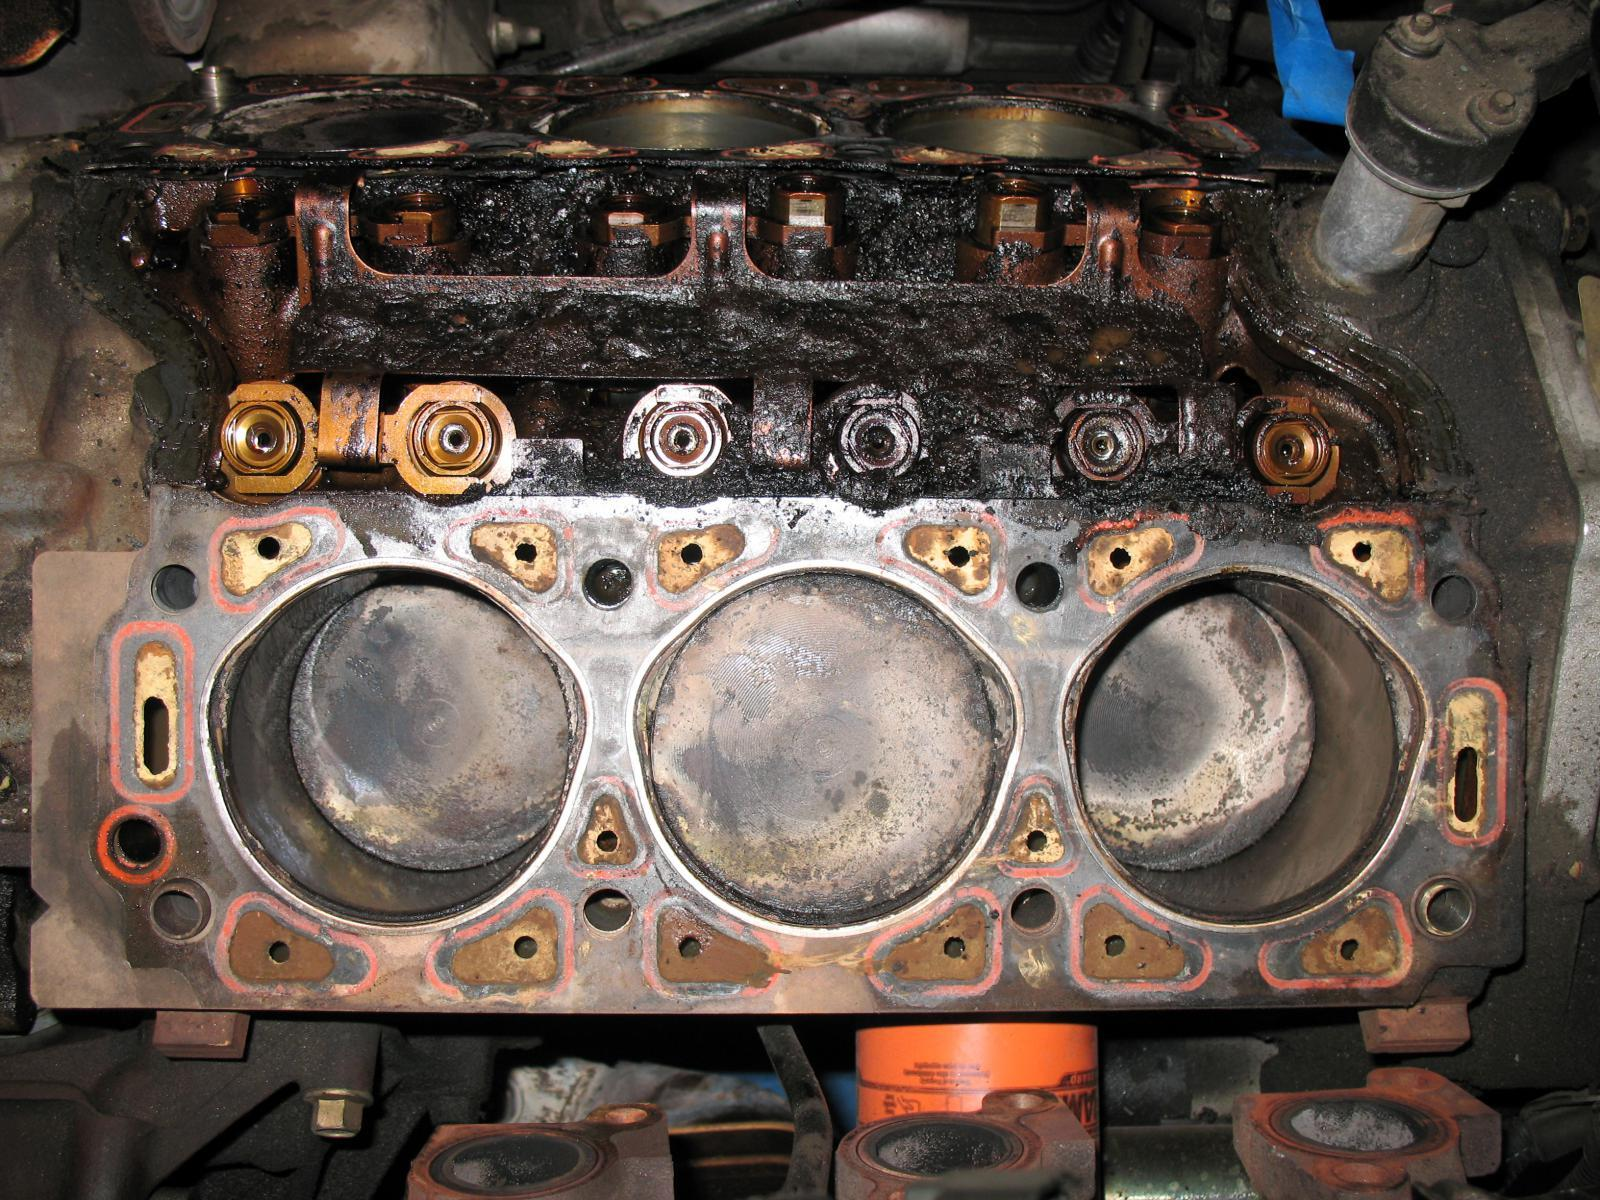 White Smoke From Exhaust Main Causes And How To Fix 1998 Mazda B2500 Thermostat Location Head Gasket Is Also Needed Some Attention